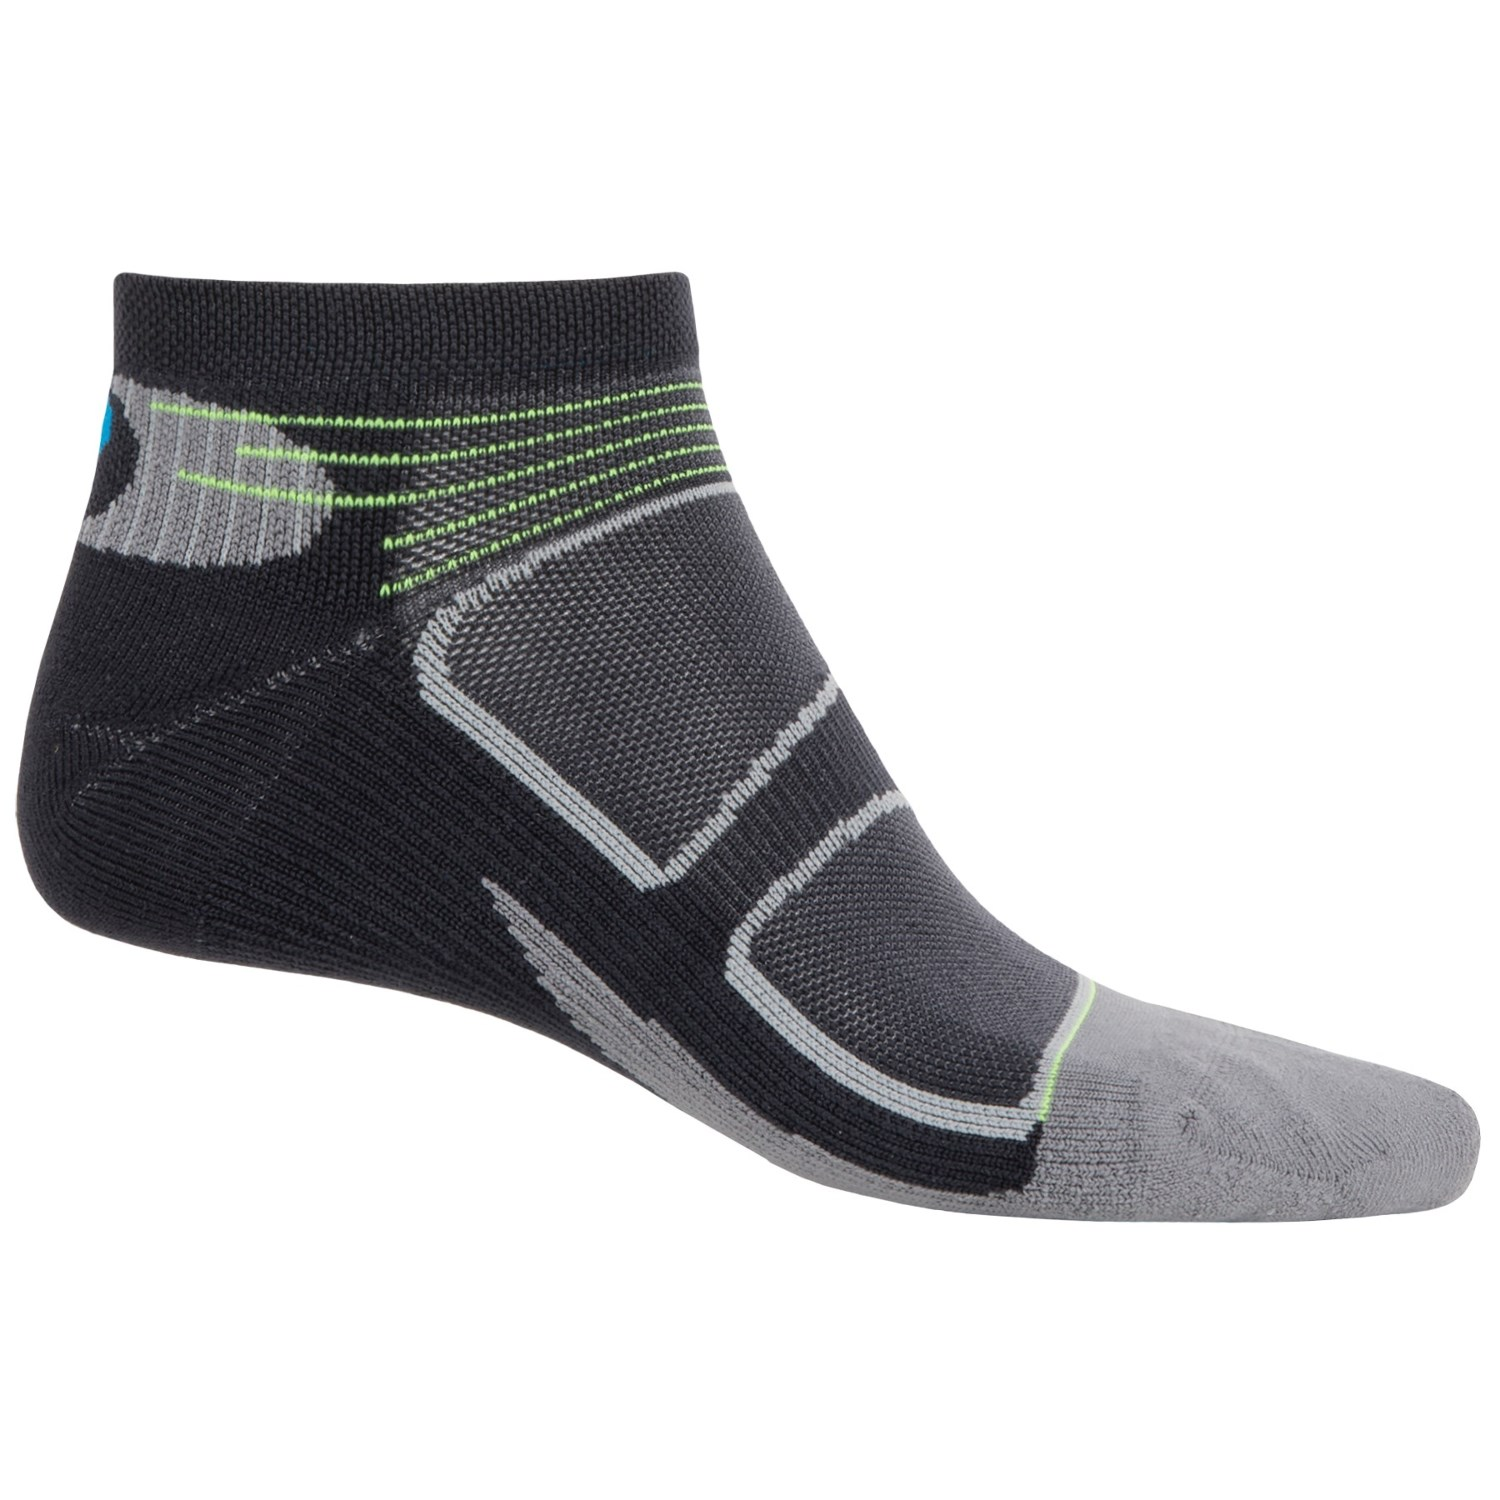 Mens Compression Socks at Walgreens. View current promotions and reviews of Mens Compression Socks and get free shipping at $